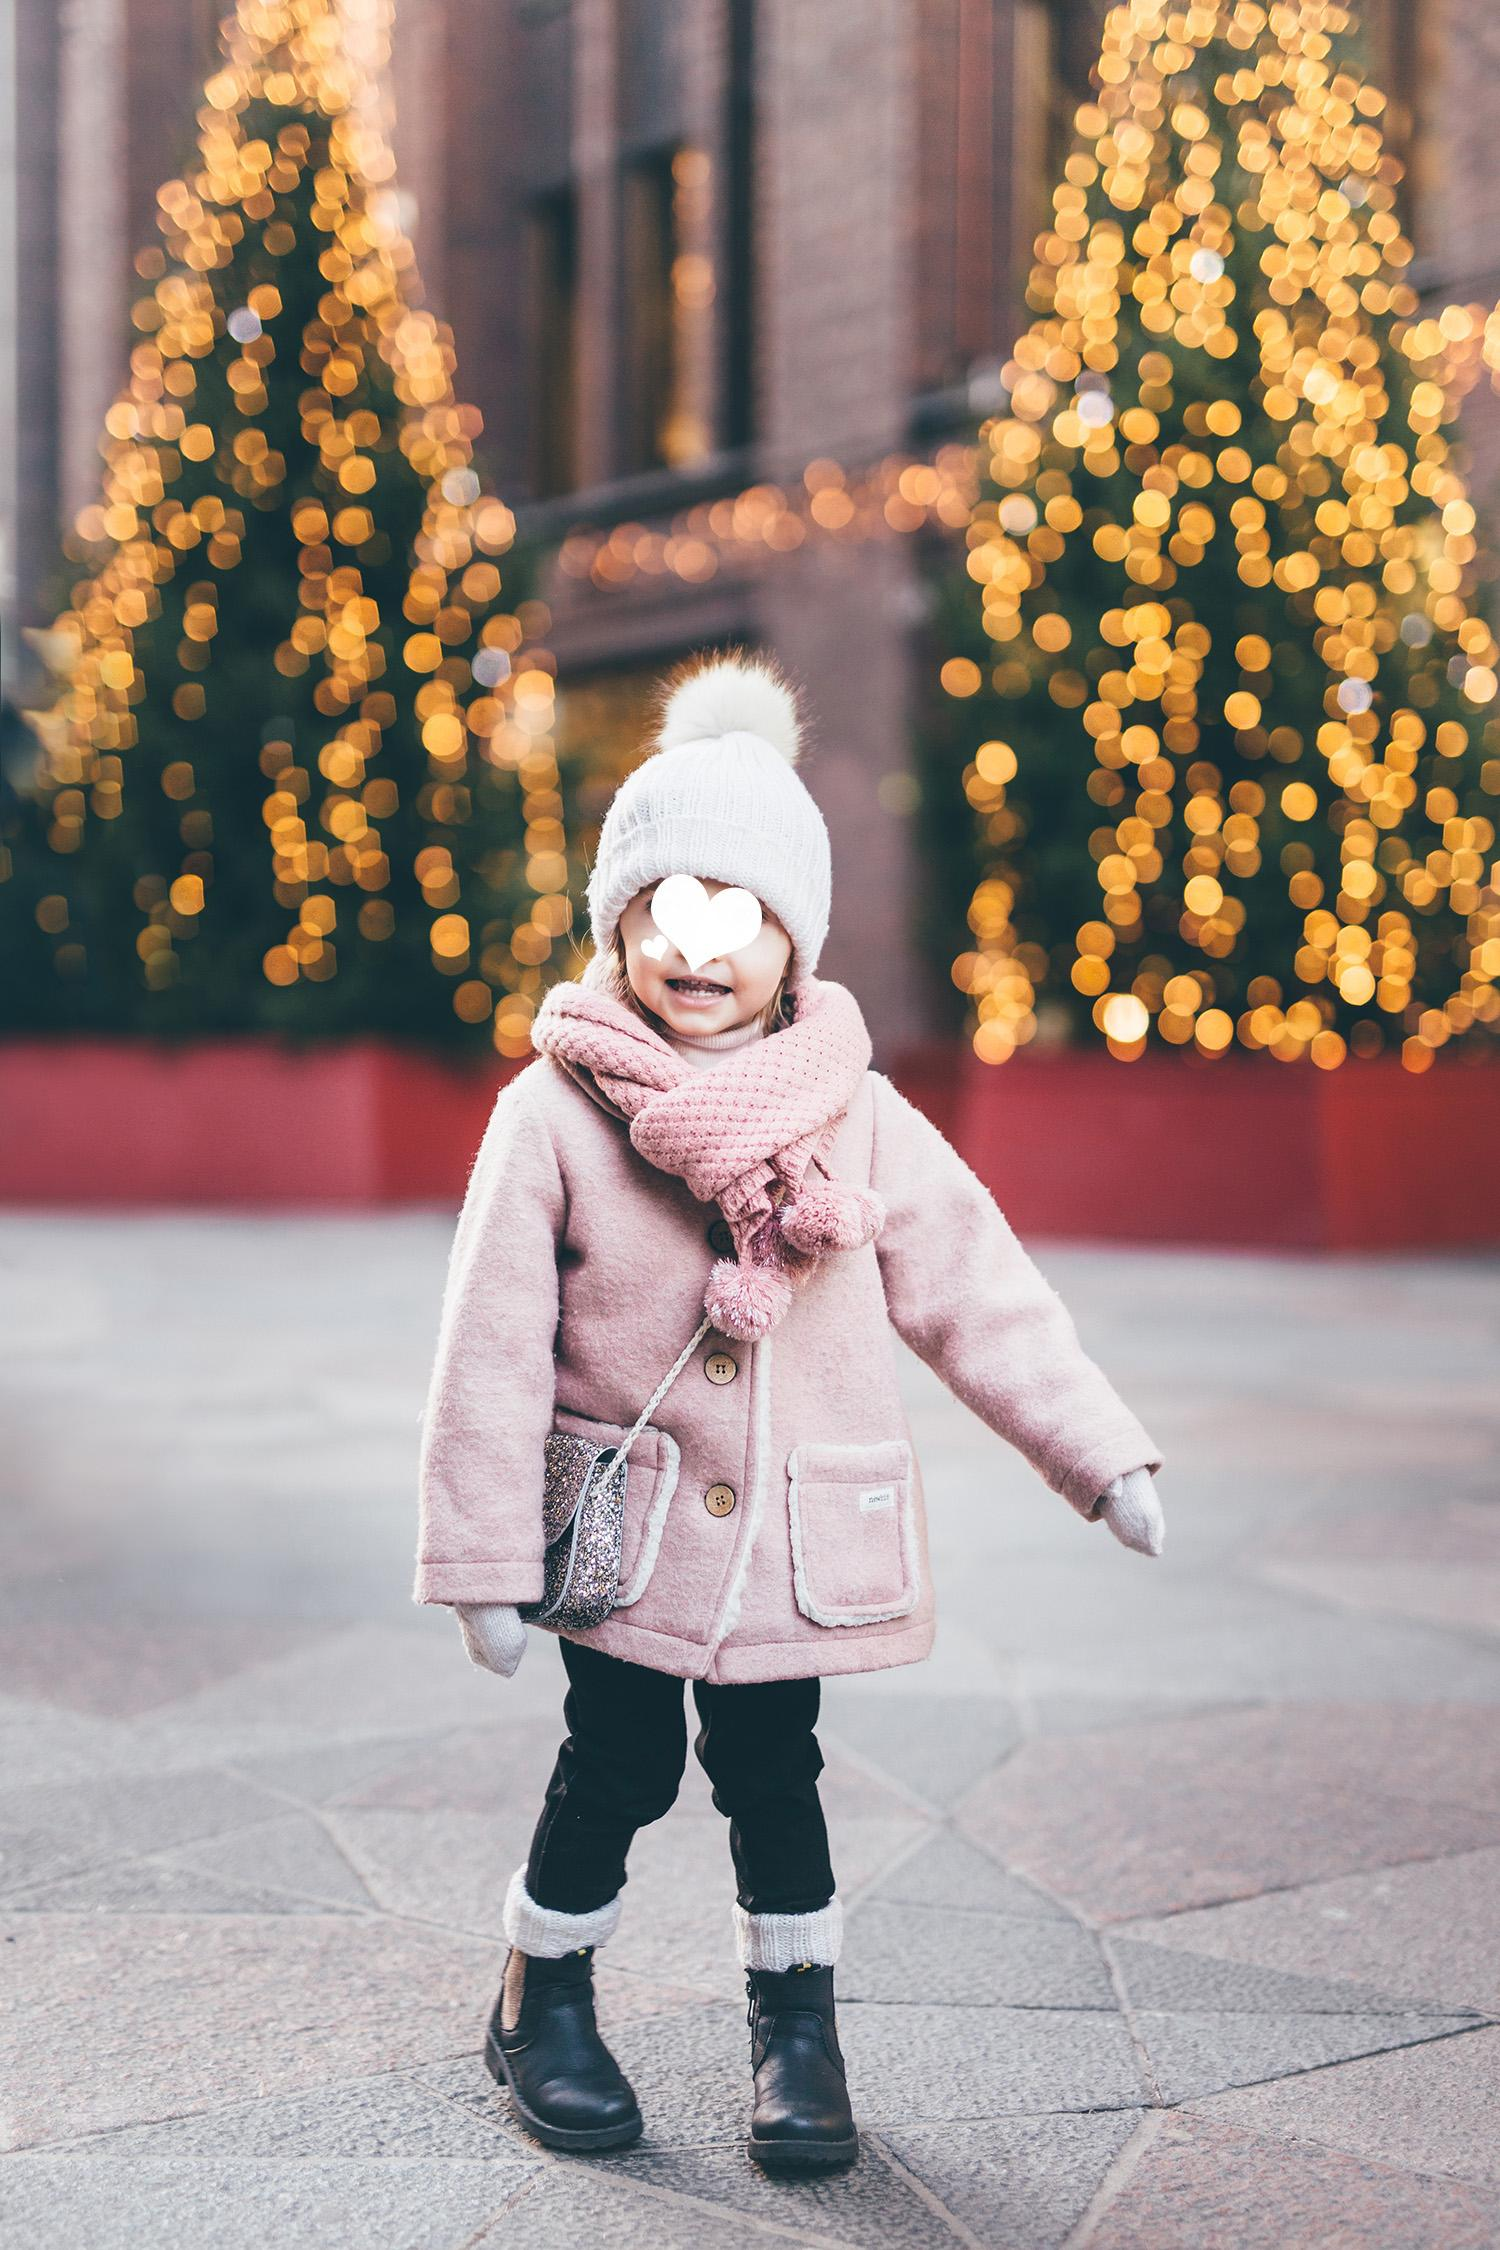 si-moda-mini-winter-outfit-7